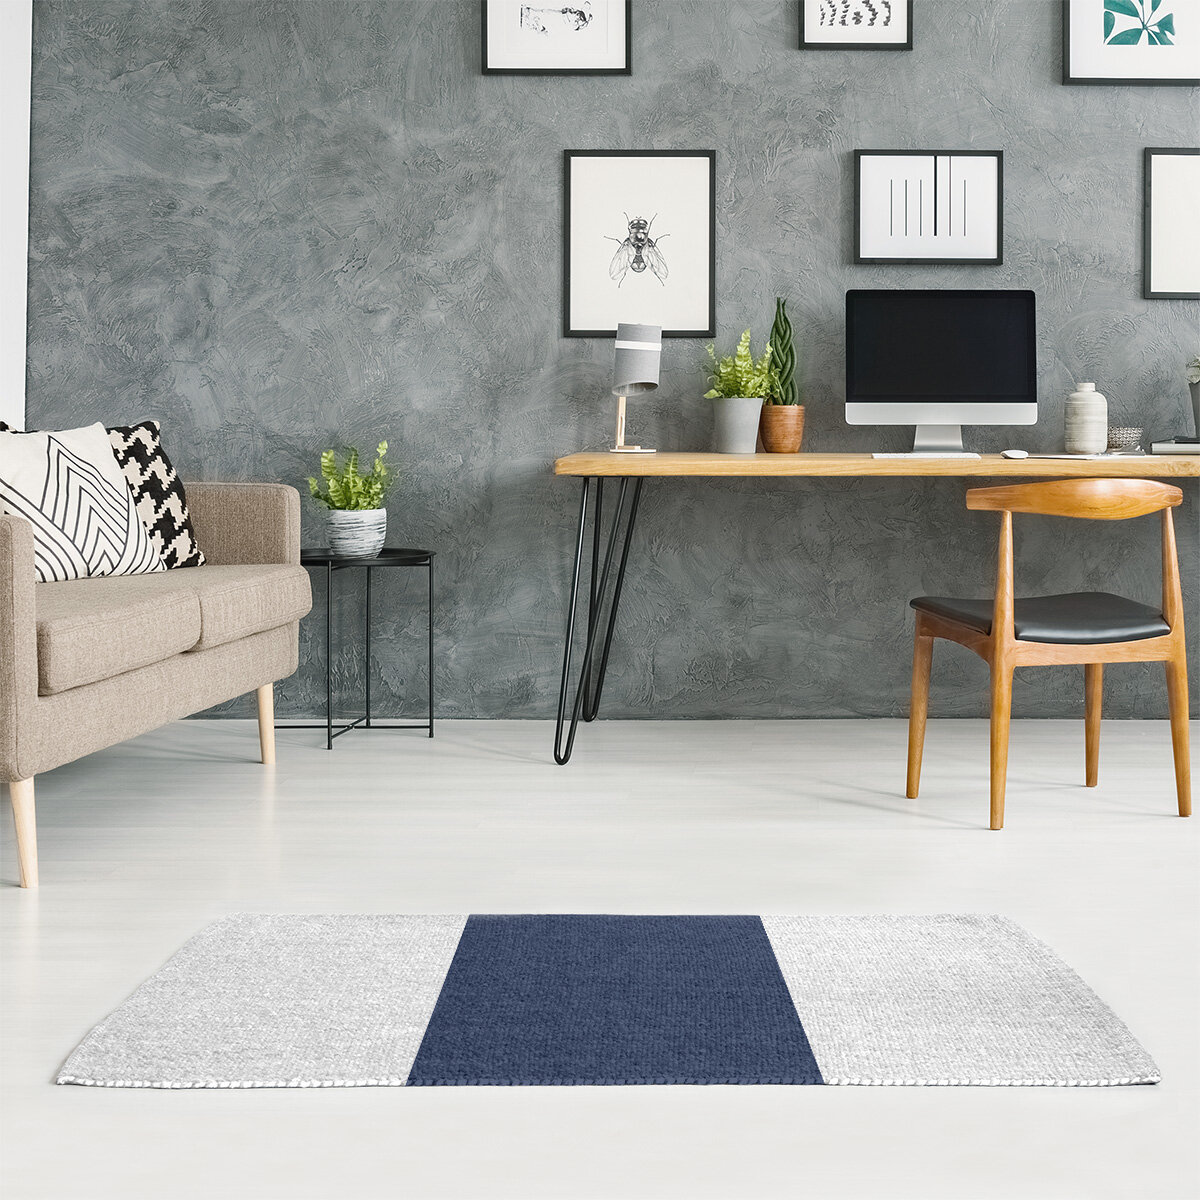 East Urban Home New York Striped White Midnight Navy Blue Area Rug Wayfair